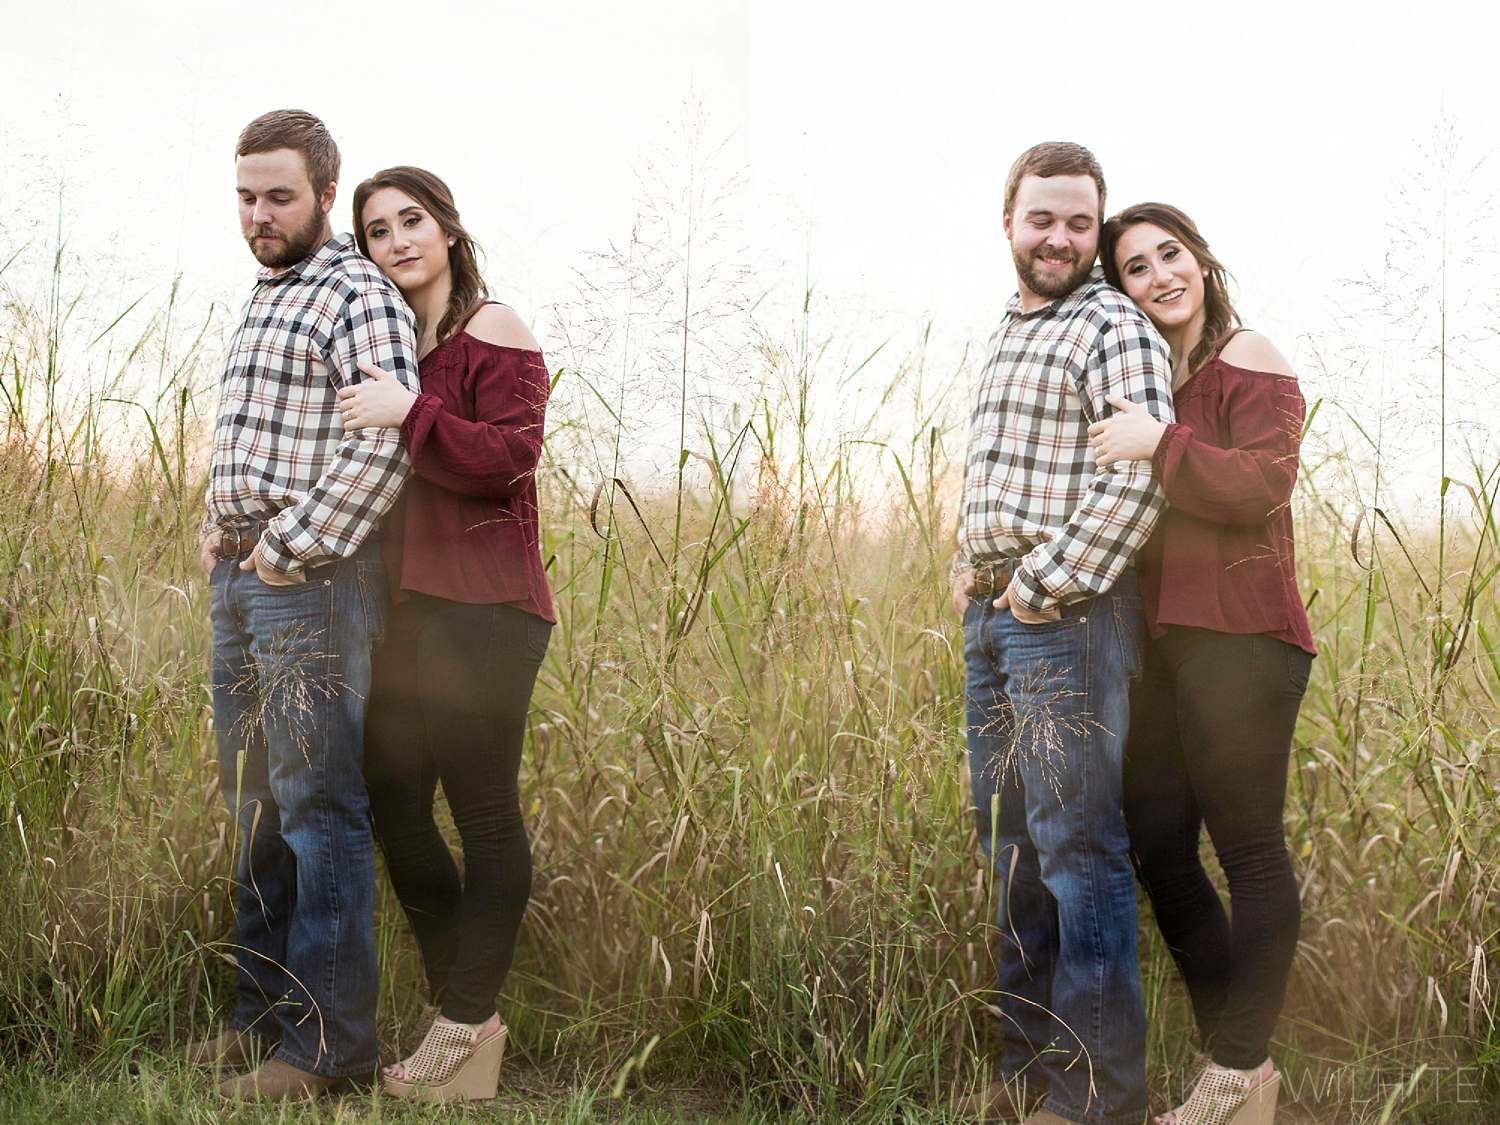 pecan-orchard-engagement-pictures-144.jpg